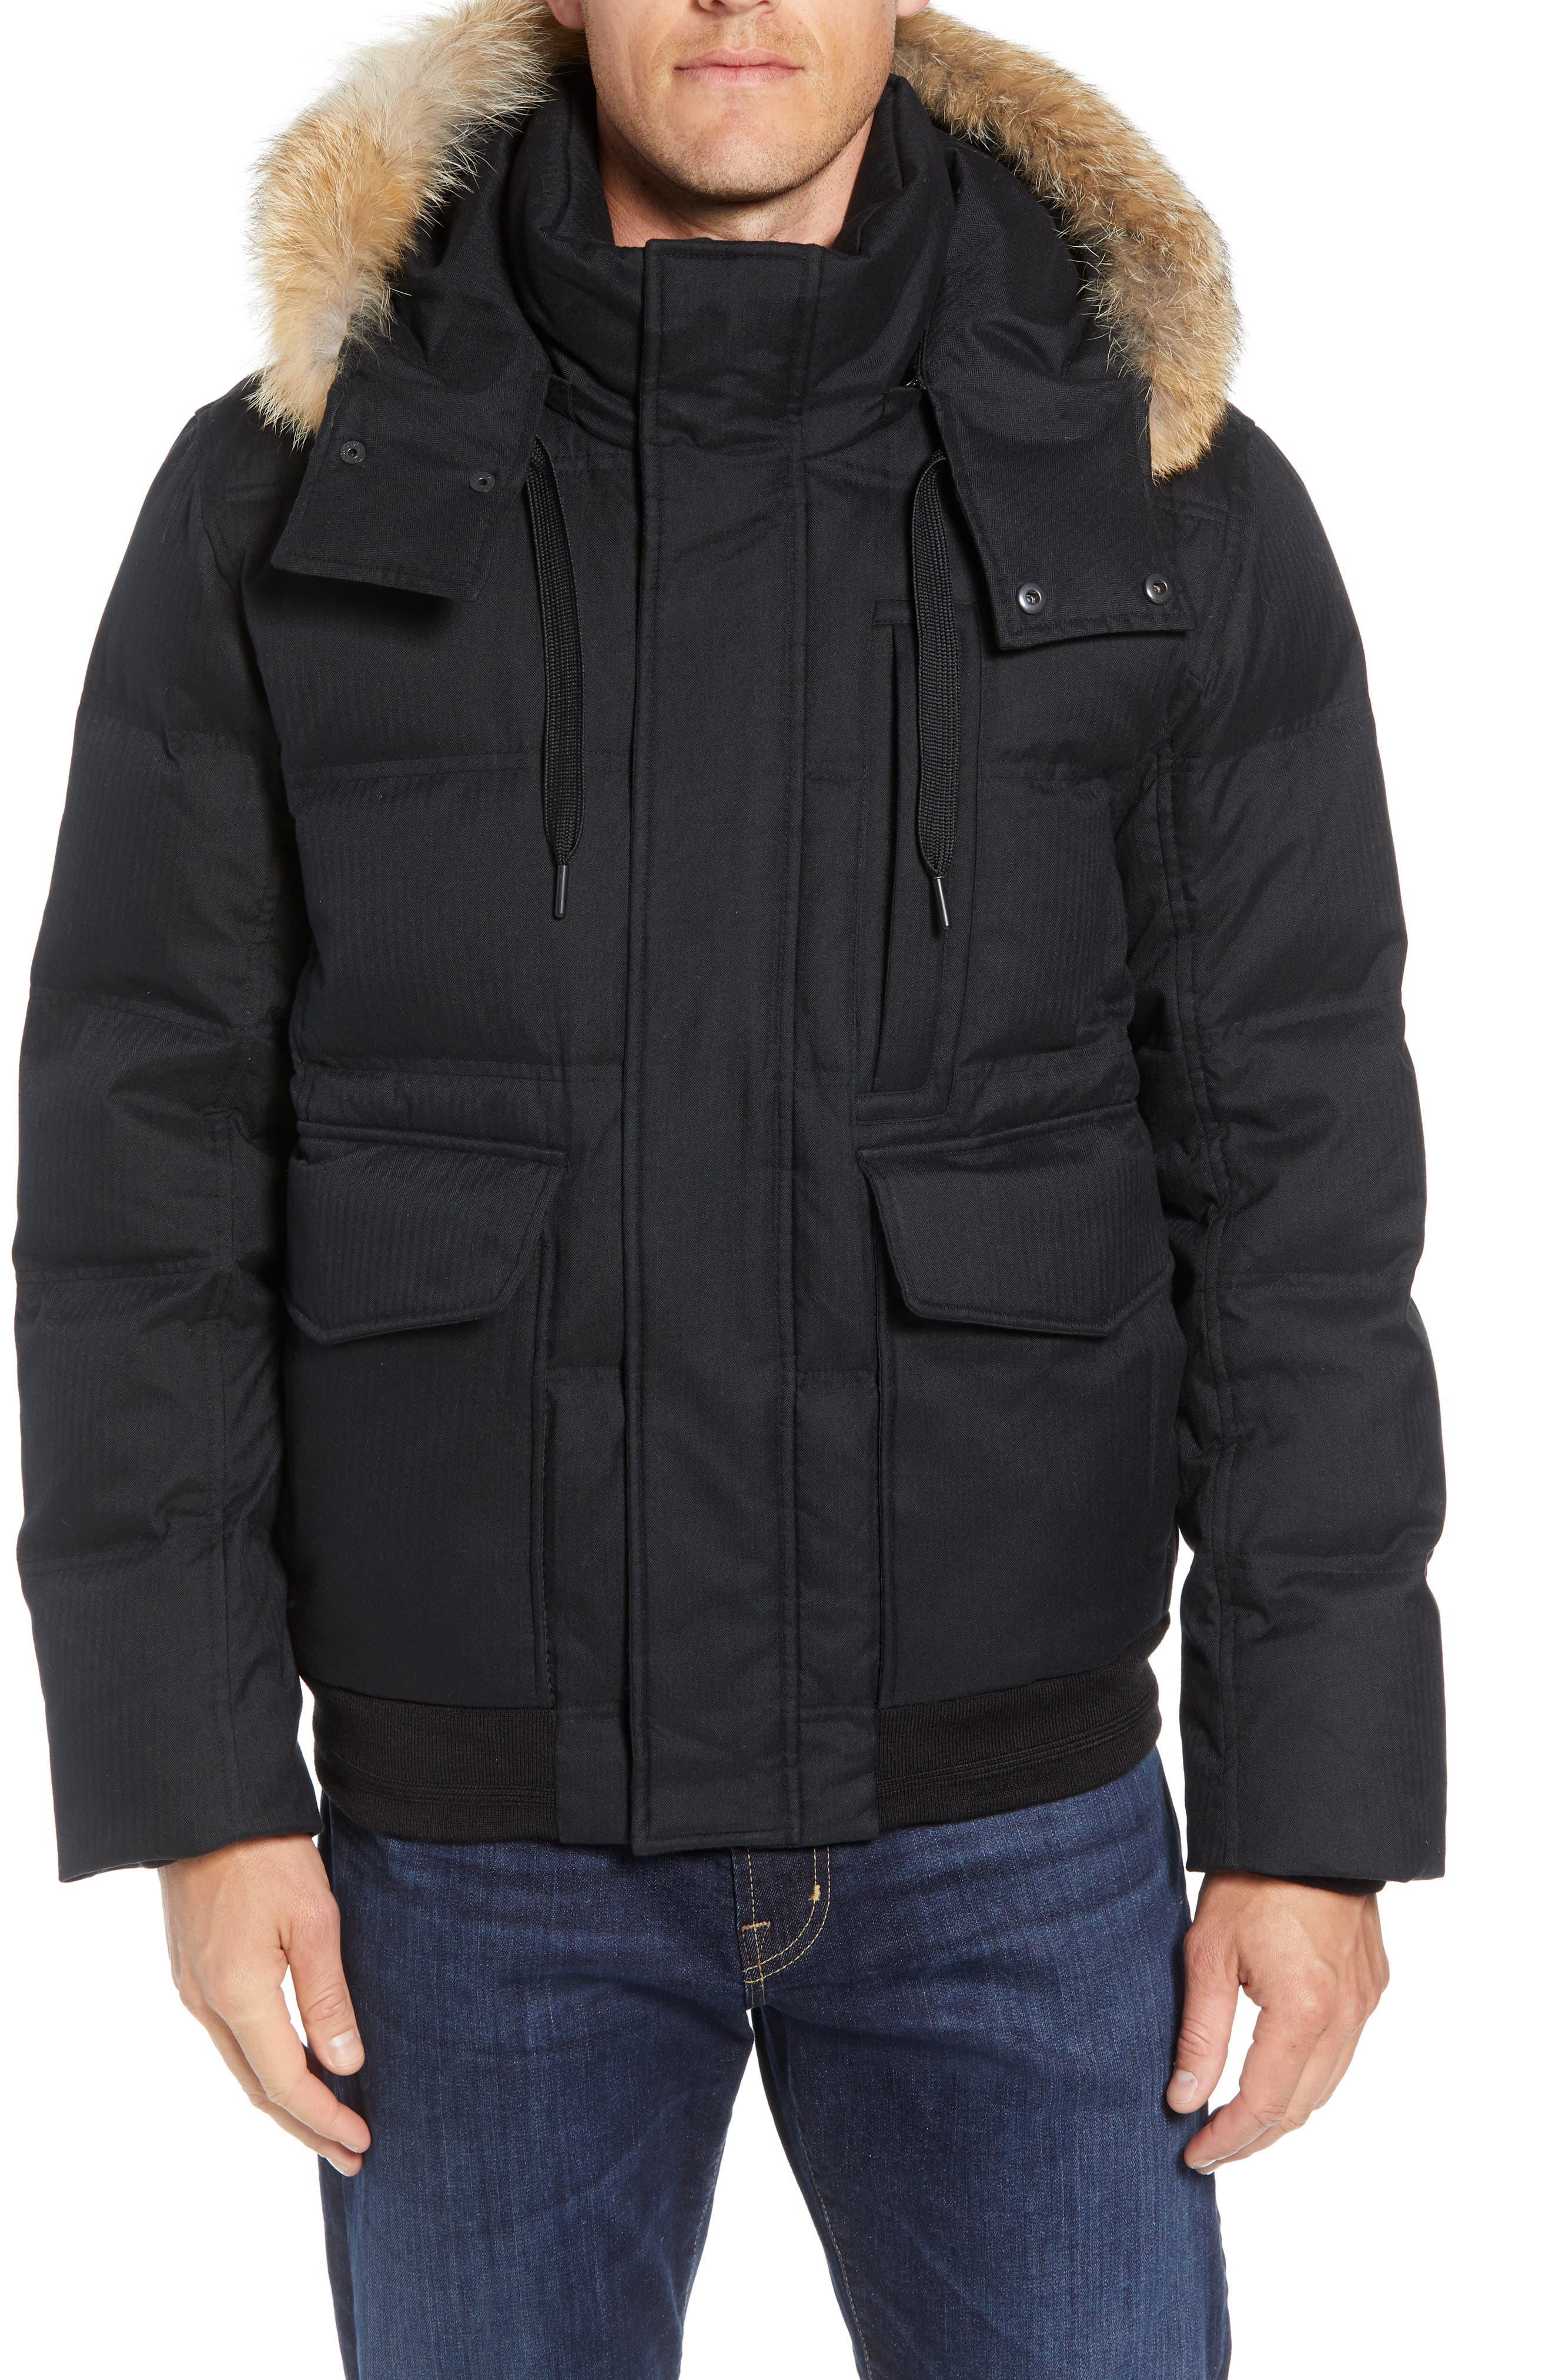 Bohlen Down & Feather Bomber Jacket with Removable Genuine Coyote Fur Trim Hood,                             Main thumbnail 1, color,                             BLACK